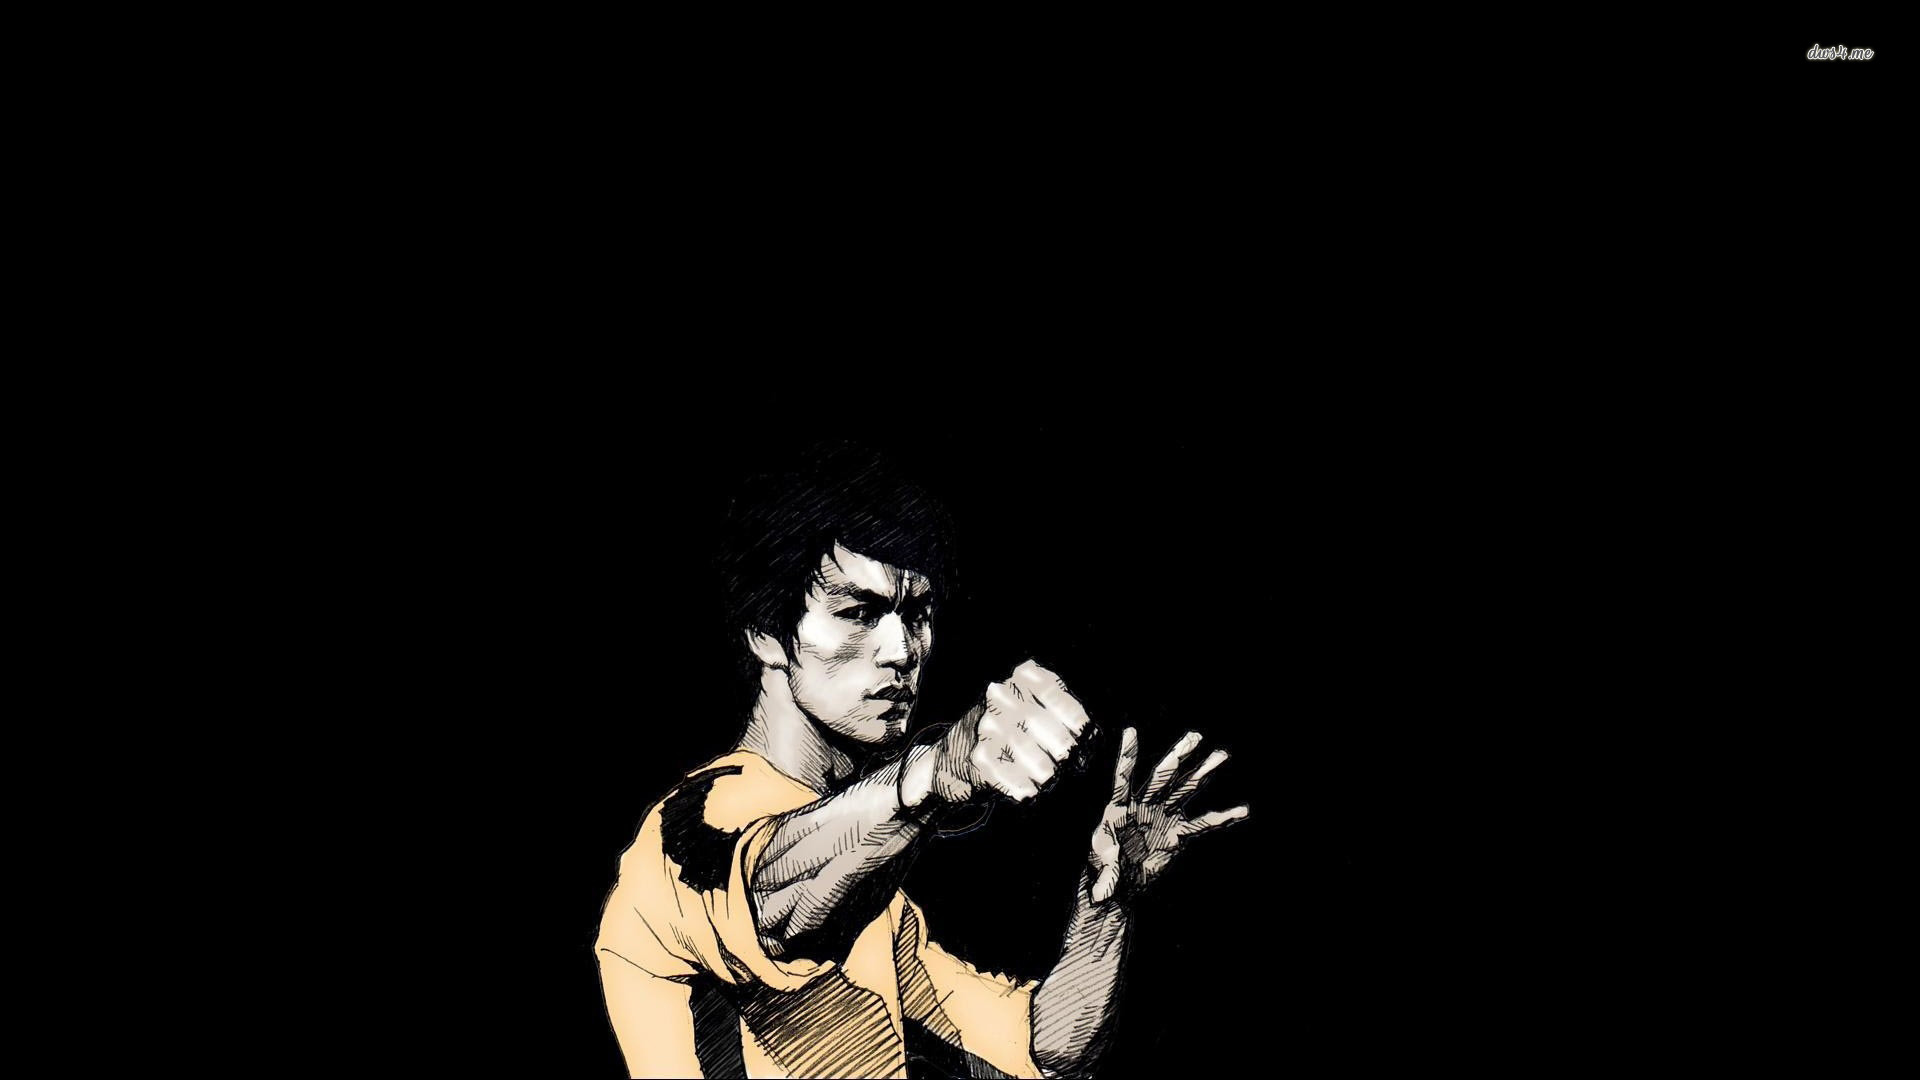 Bruce Lee Wallpaper 4